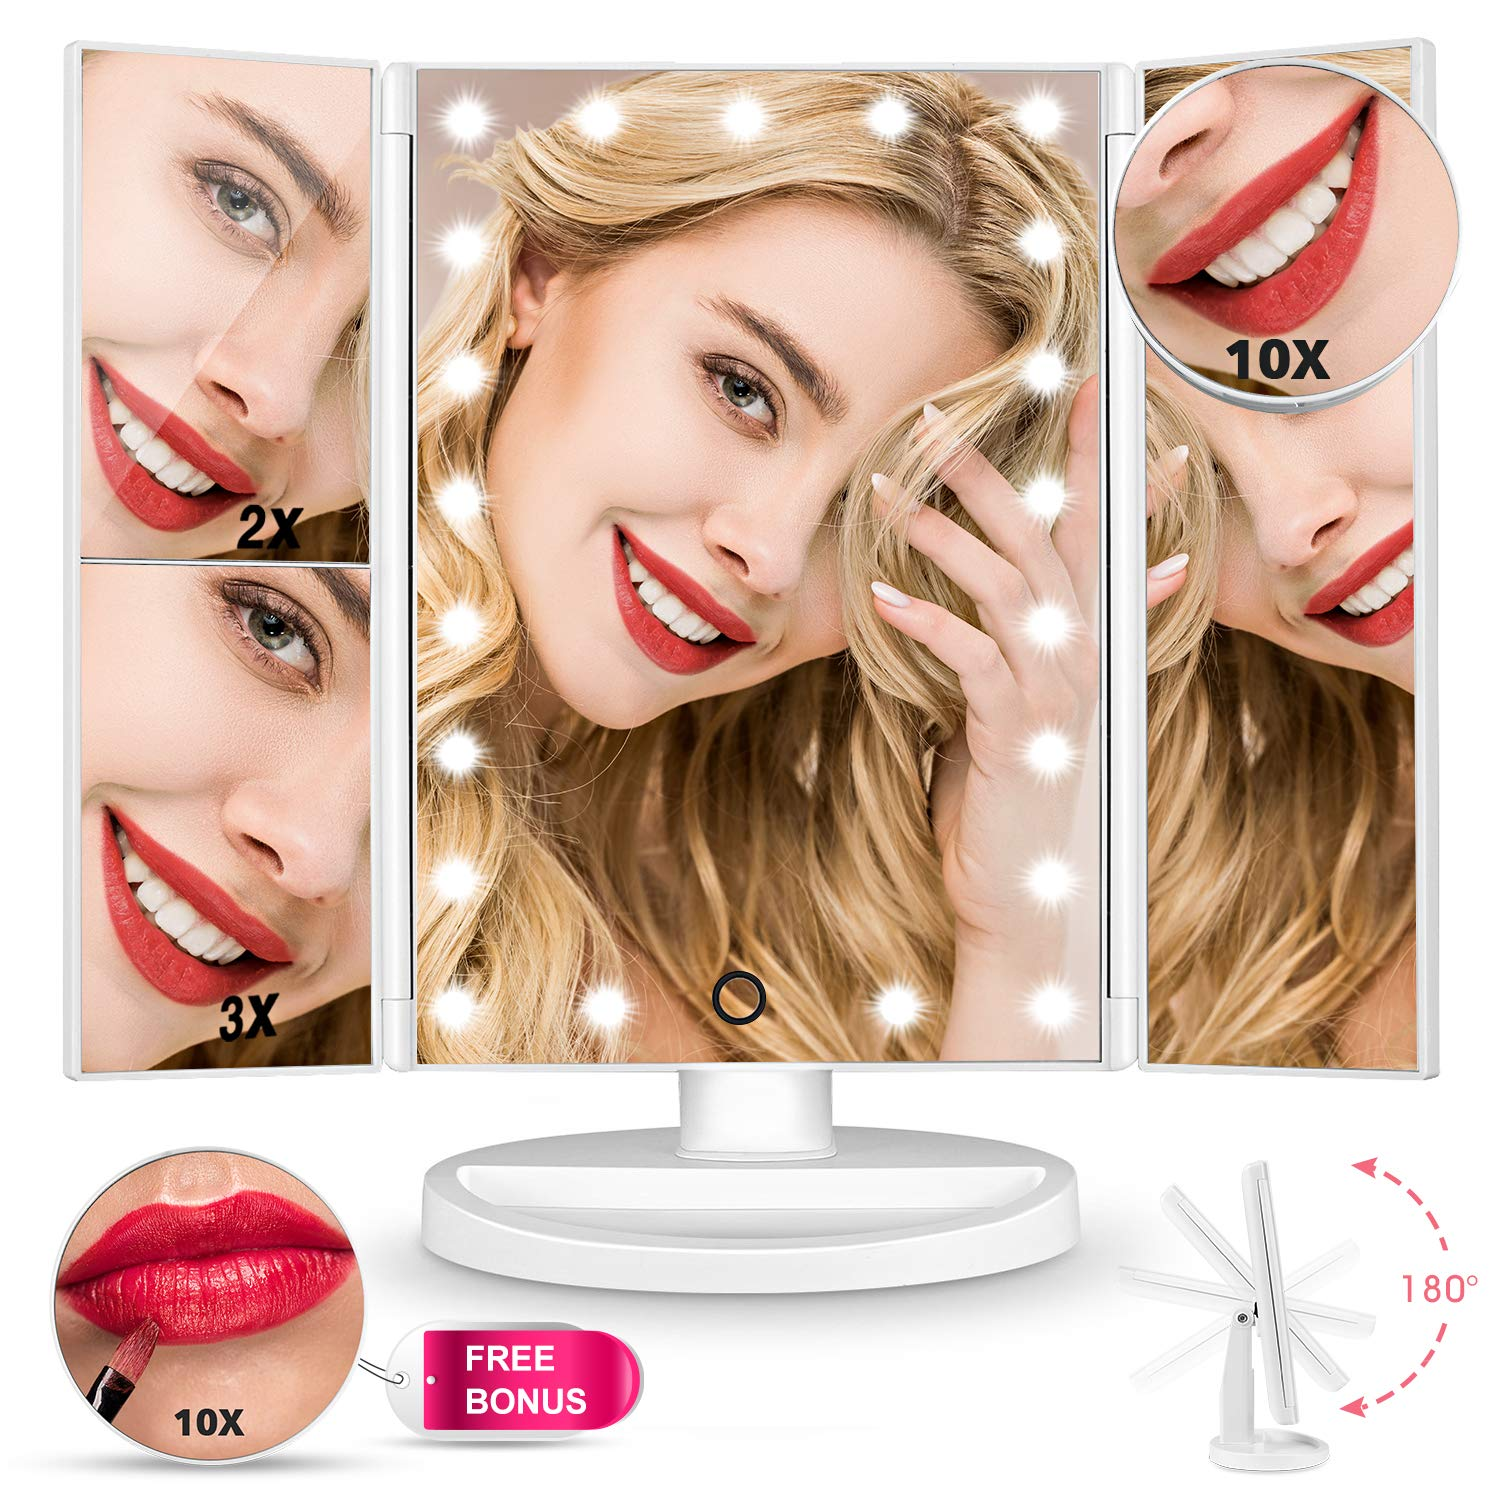 Upgrade Version Makeup Mirror 180 Trifold LED Vanity Mirror Adjustable Touch Screen Cosmetic Mirror with LED Lights Lighted Makeup Mirror with 4 Magnification 1X 2X 3X 10X Mirrors